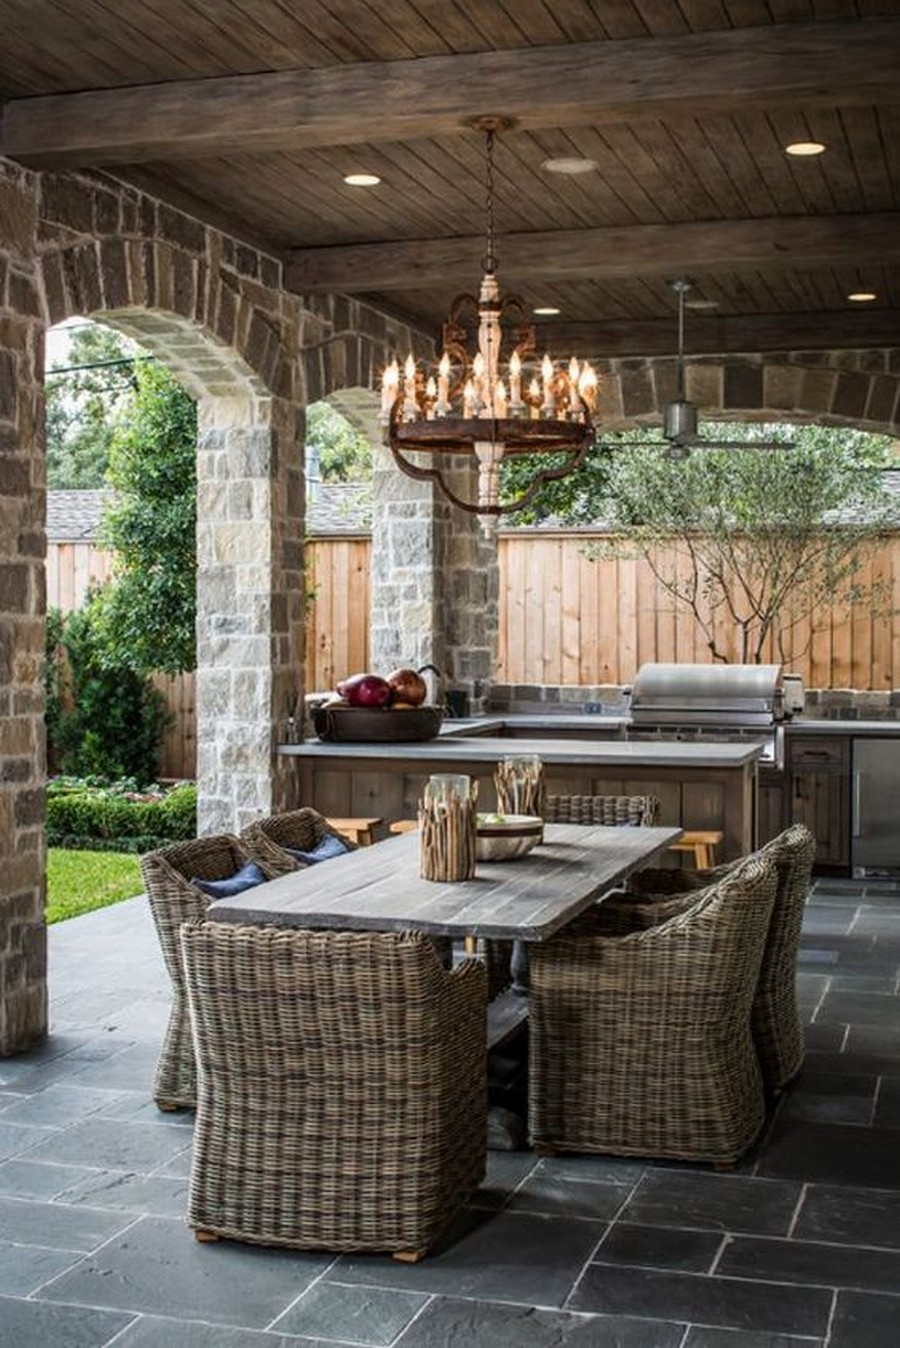 10 Outdoor Kitchen Design Ideas Perfect For Your Backyard Outdoor Kitchen Design Ideas 10 Outdoor Kitchen Design Ideas Perfect For Your Backyard 10 Outdoor Kitchen Design Ideas Perfect For Your Backyard 9